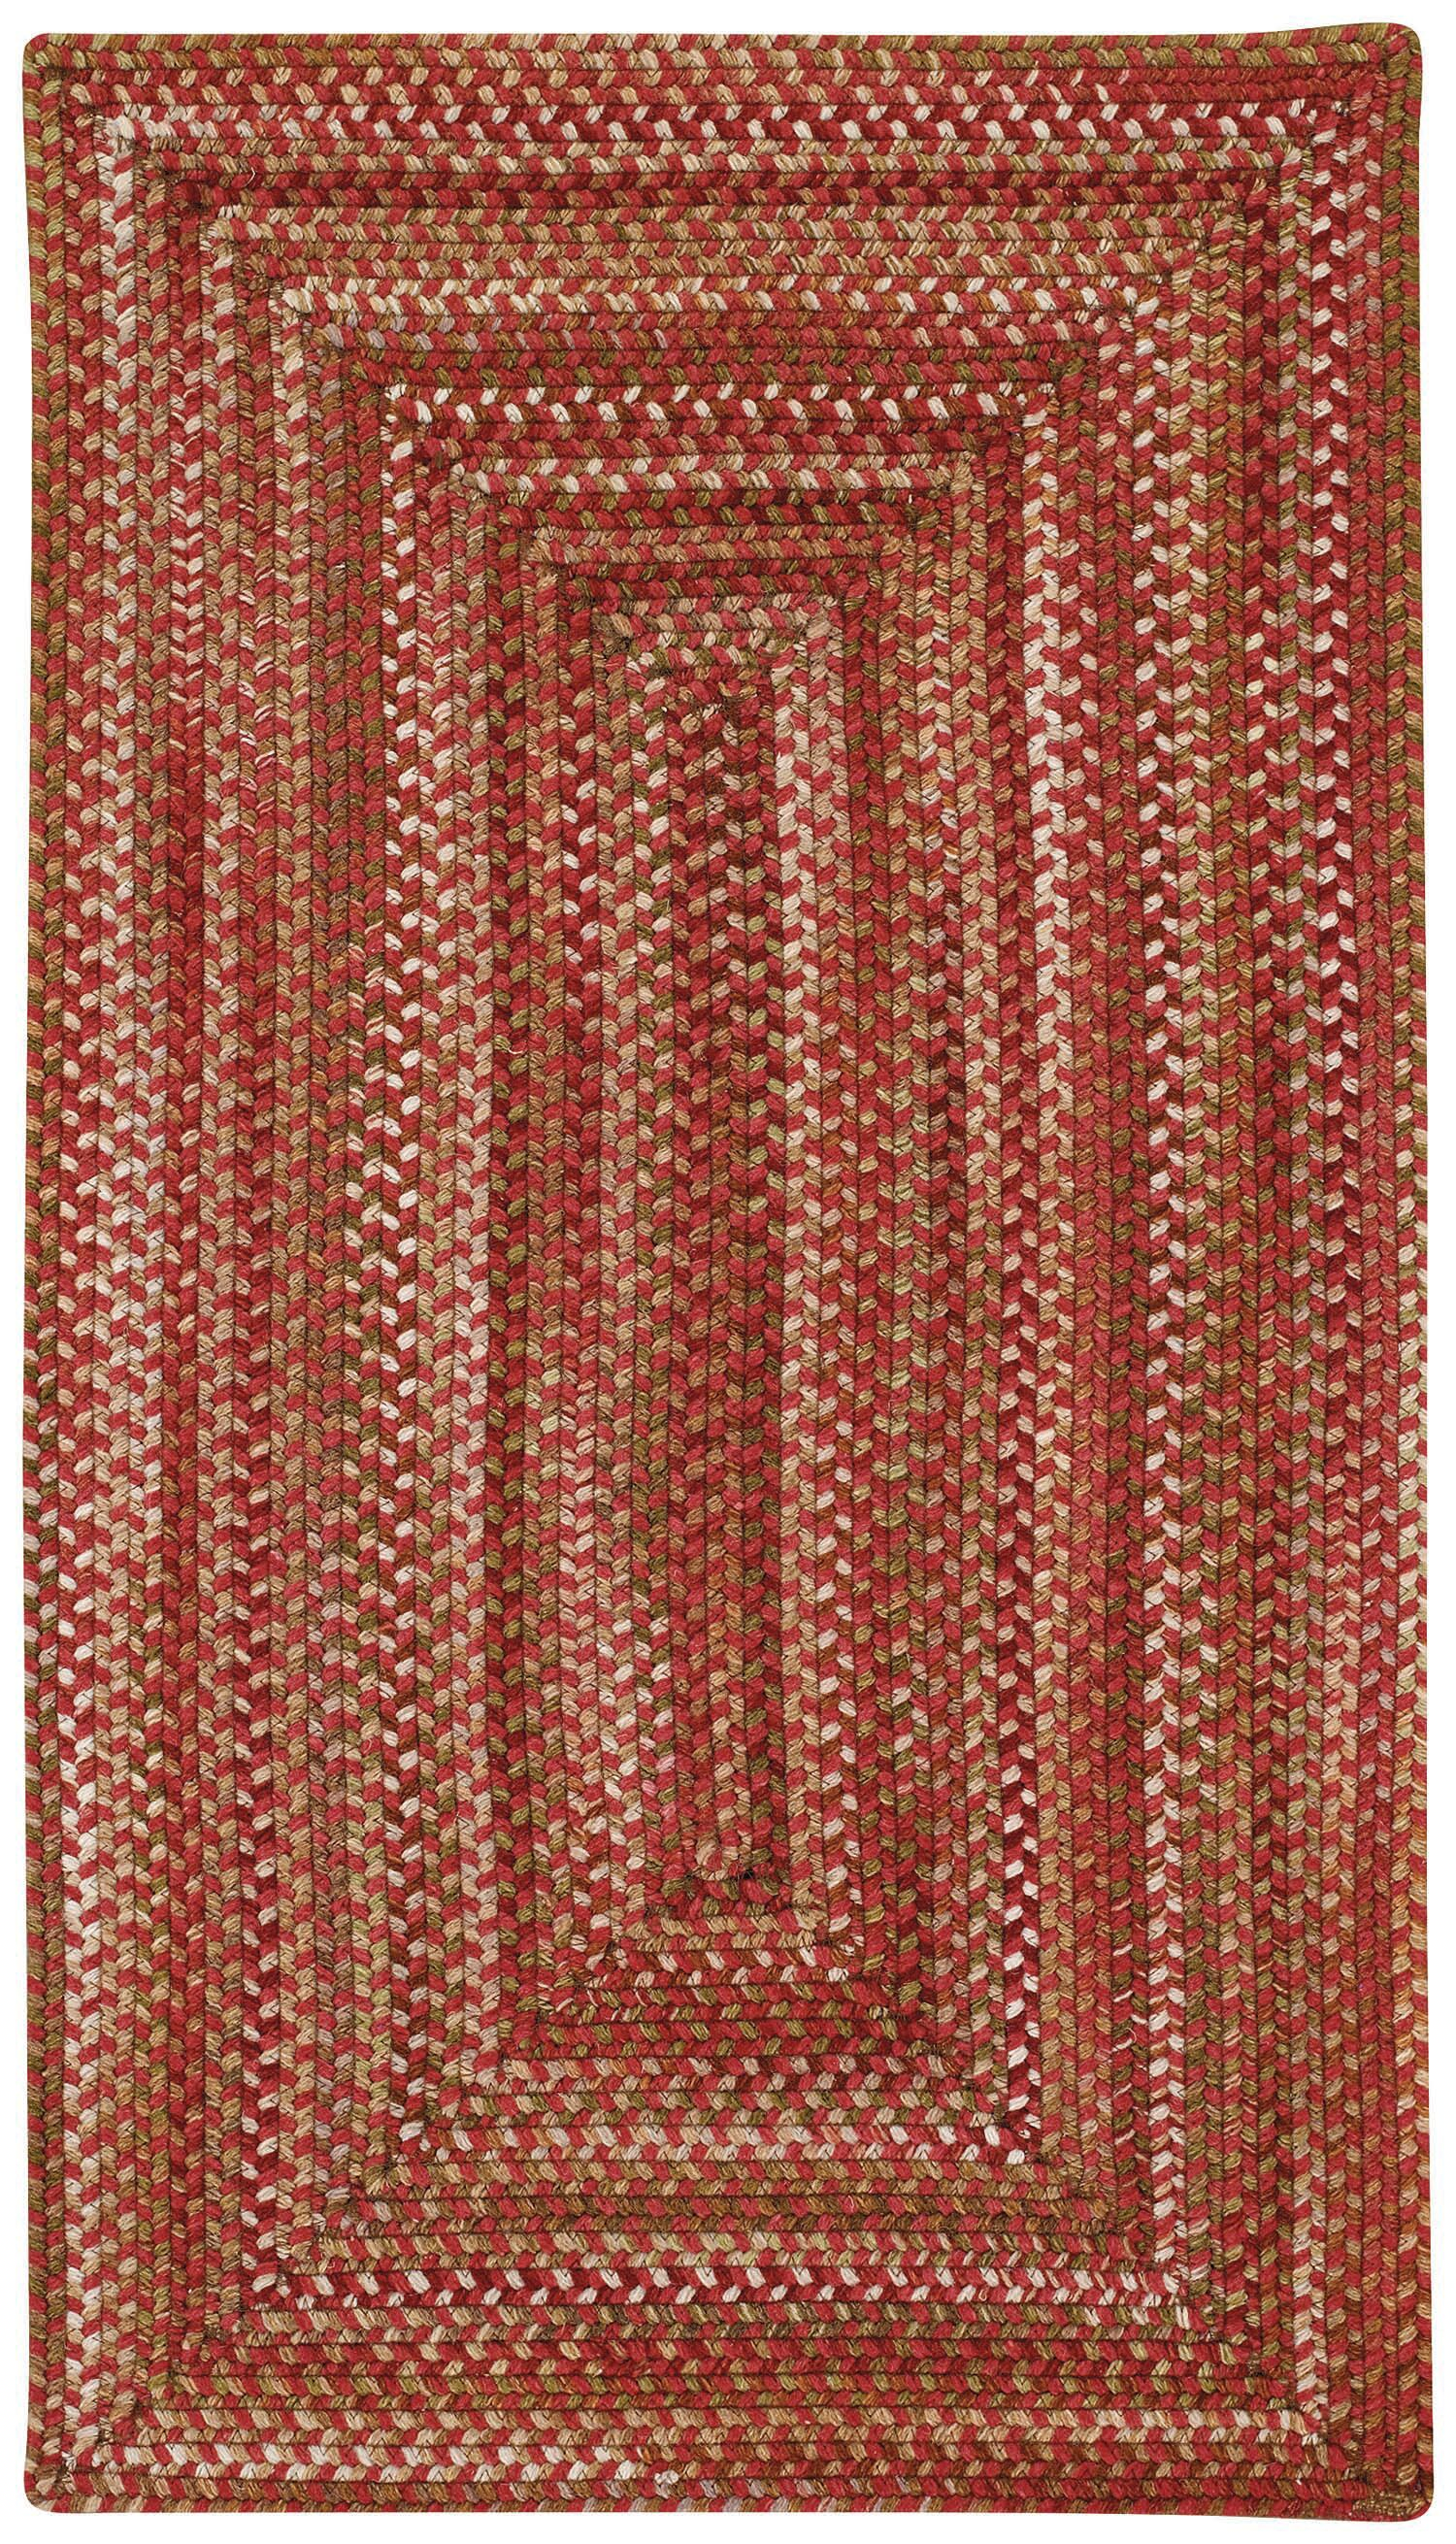 Holcombe Red Wool Hand Braided Area Rug Rug Size: Concentric 2' x 3'